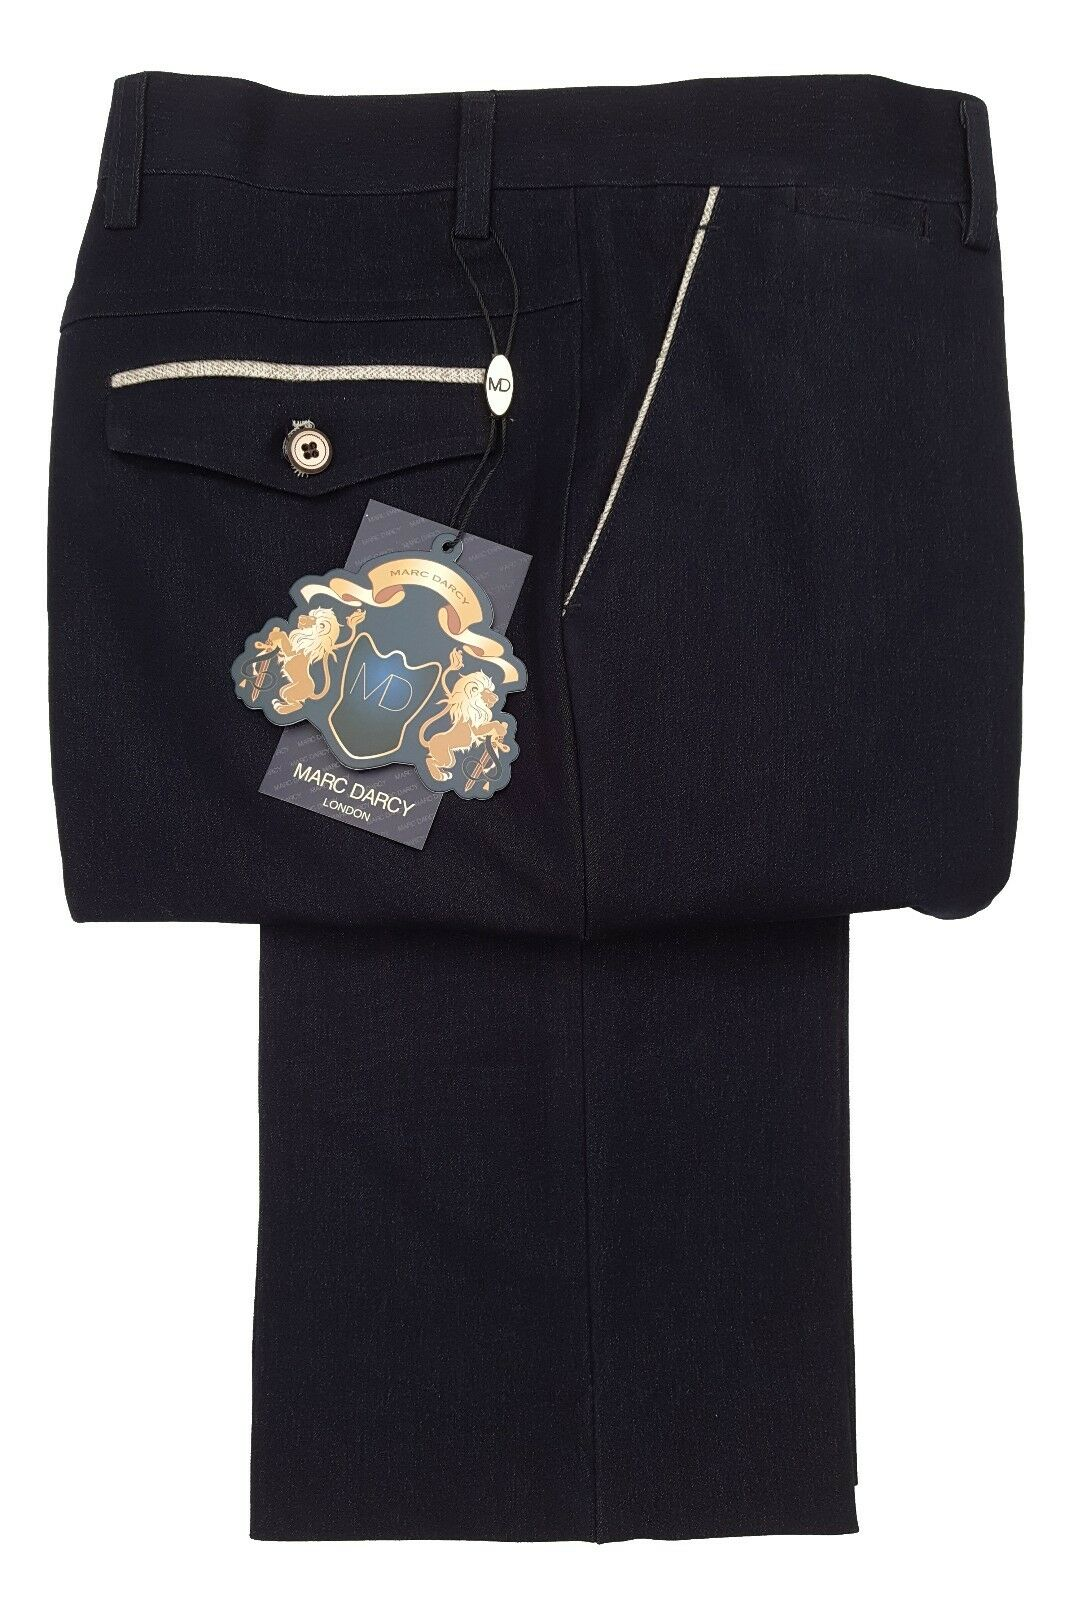 MENS MARC DARCY FORMAL SMART DRESSY TROUSER STYLE WILL - NAVY blueE